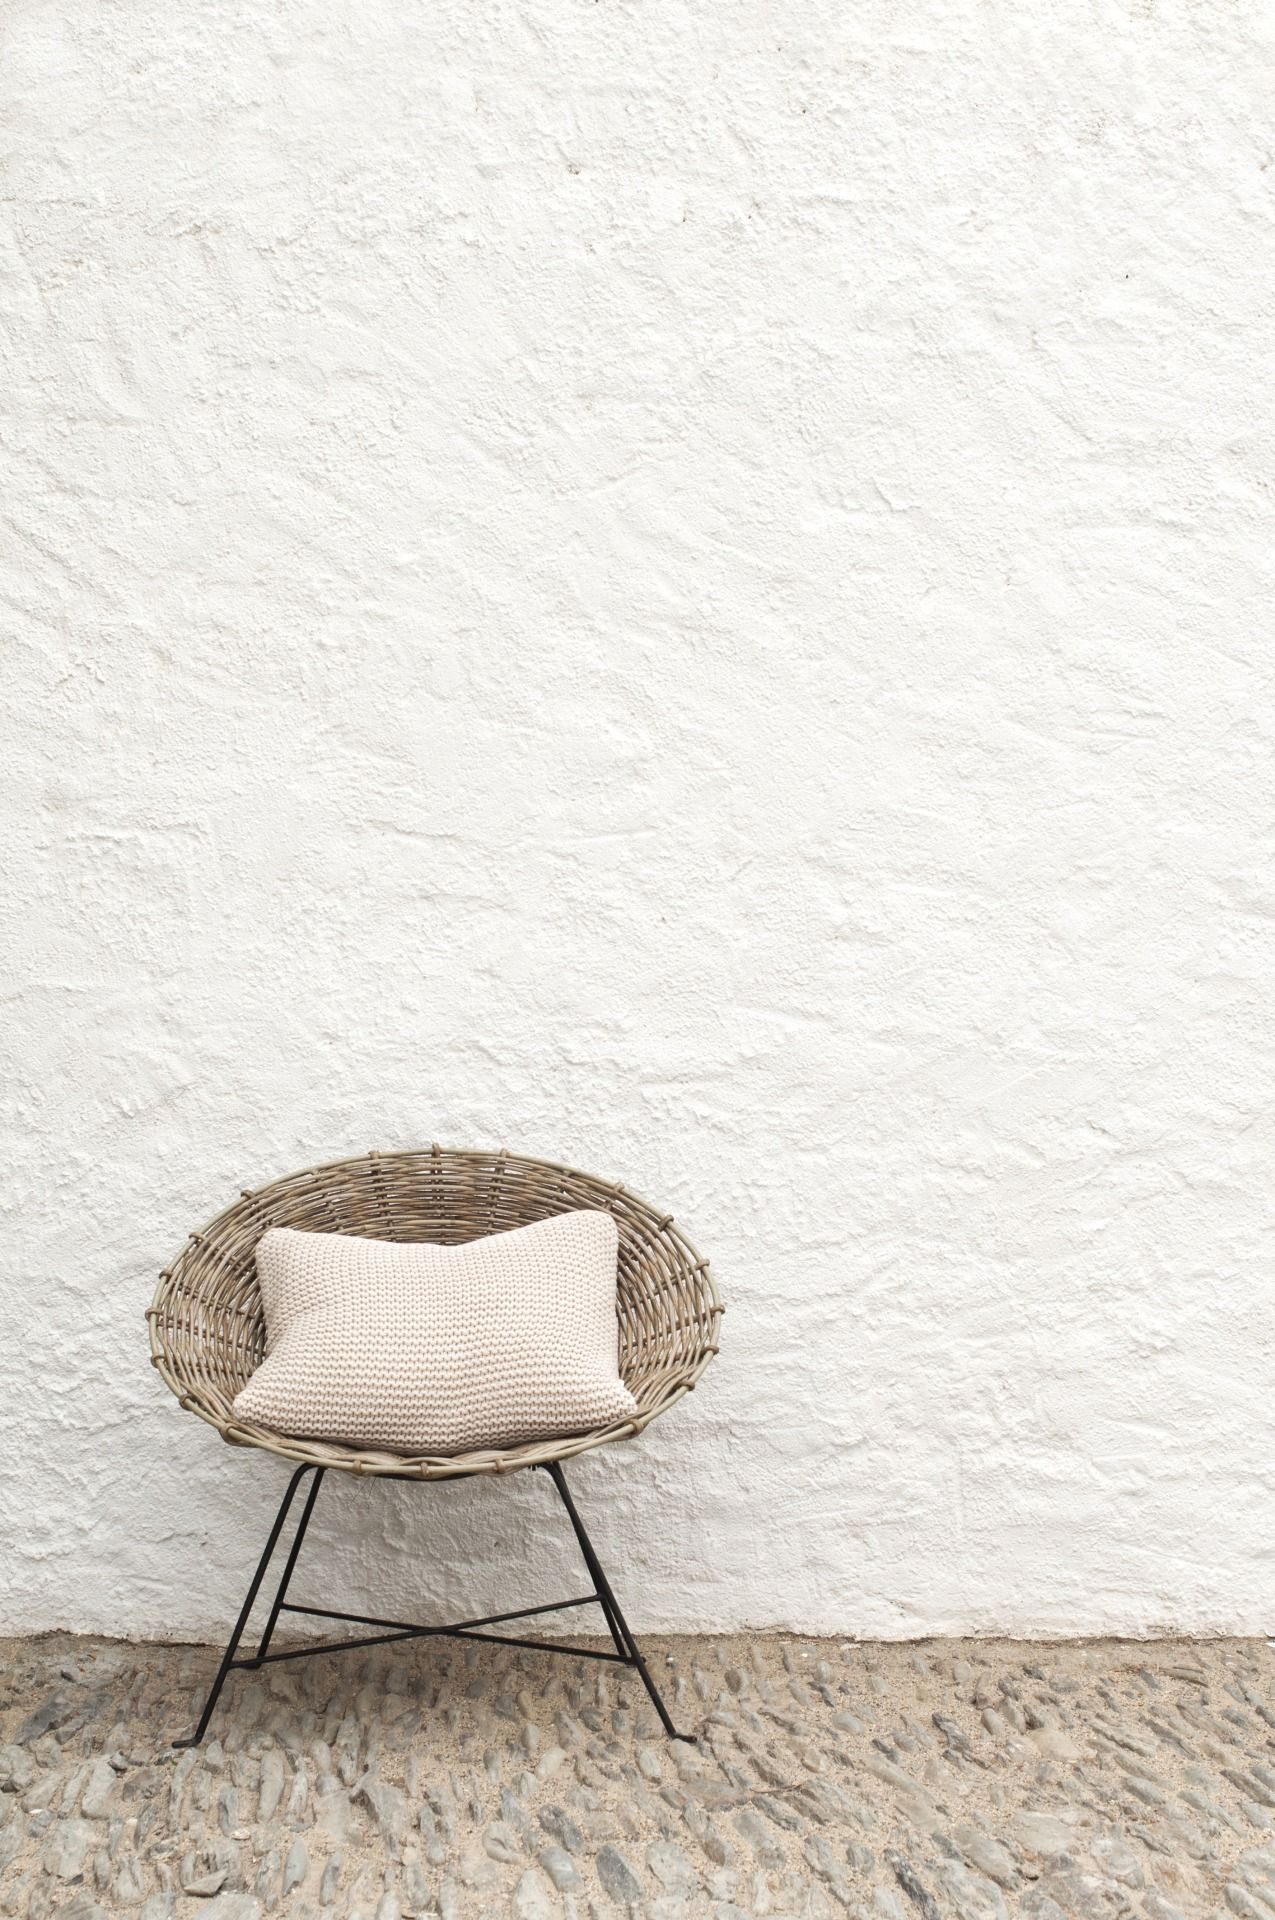 Beau White Stucco Wall, Hastily Hacked Texture Evokes Continuous Movement U0026  Energy